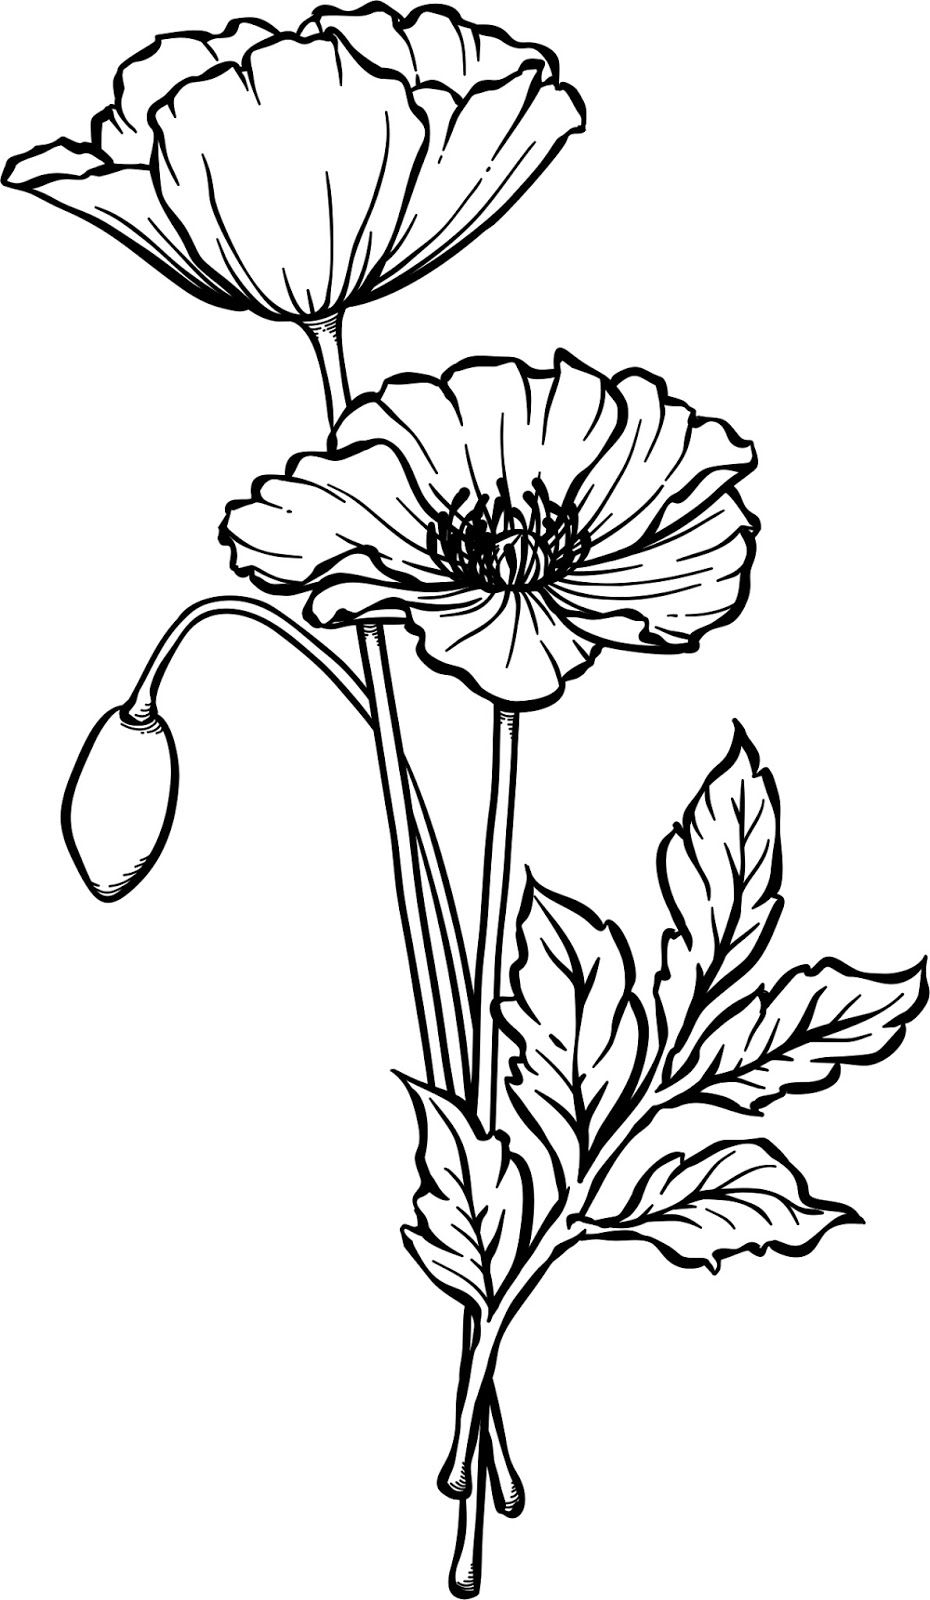 Beccy S Place Poppies Flower Drawing Flower Sketches Flower Art